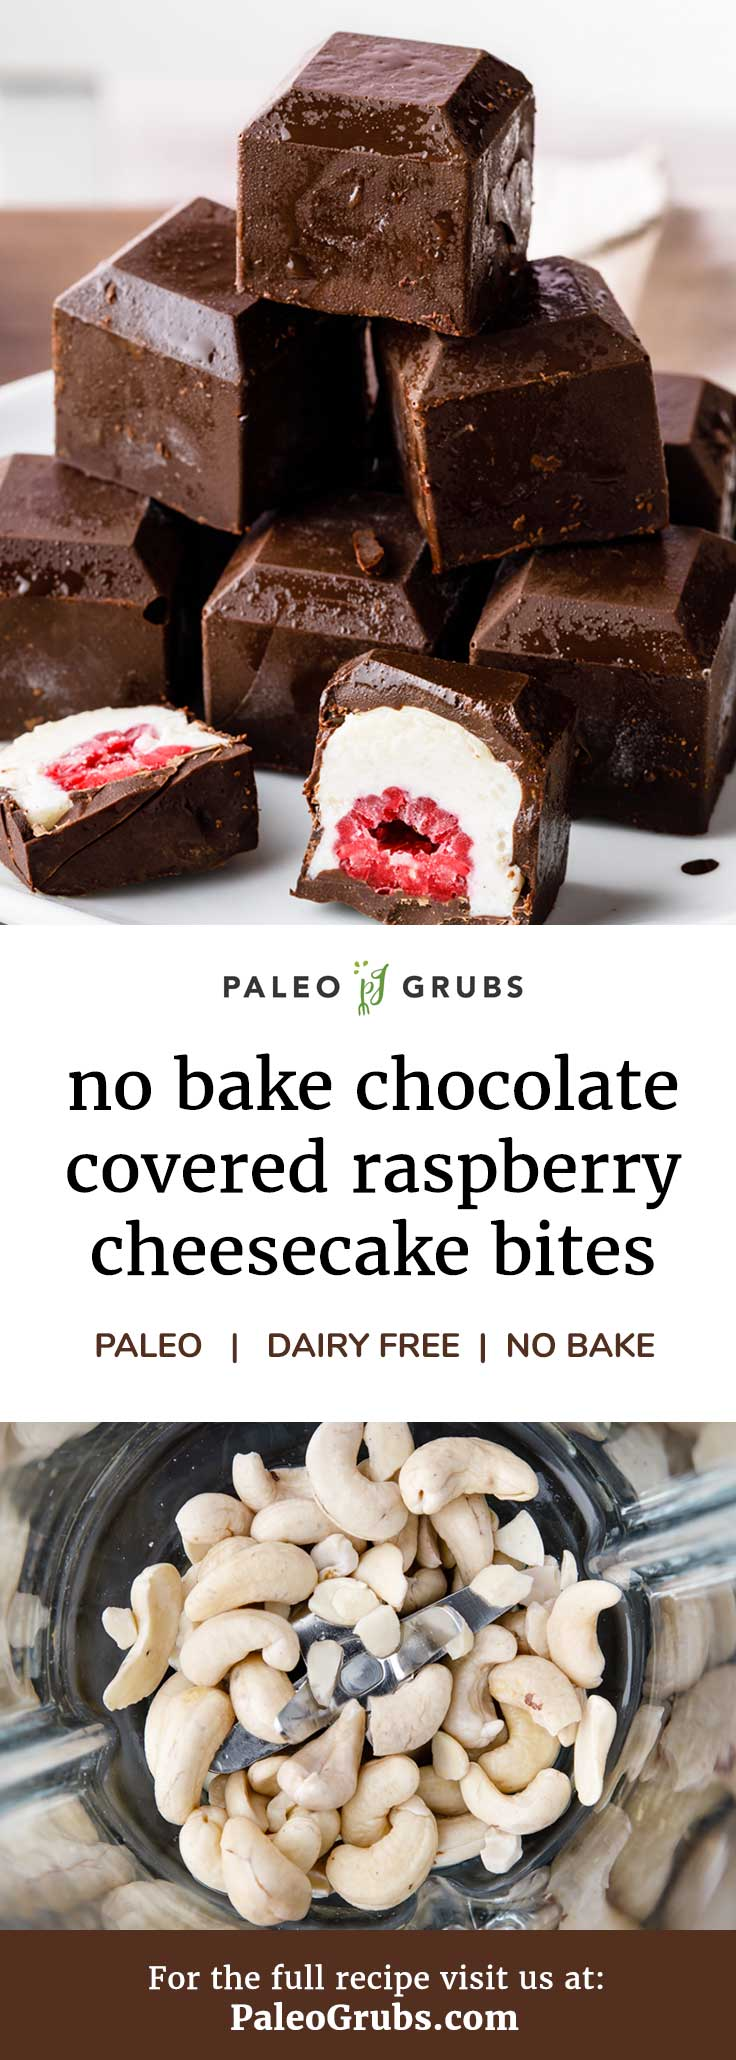 "These little no bake dark chocolate raspberry cheesecake bites are to die for! A must try for anyone that wants a guilt-free Paleo-friendly dessert and loves dark chocolate, creamy ""cheesecake"" and tart raspberries."